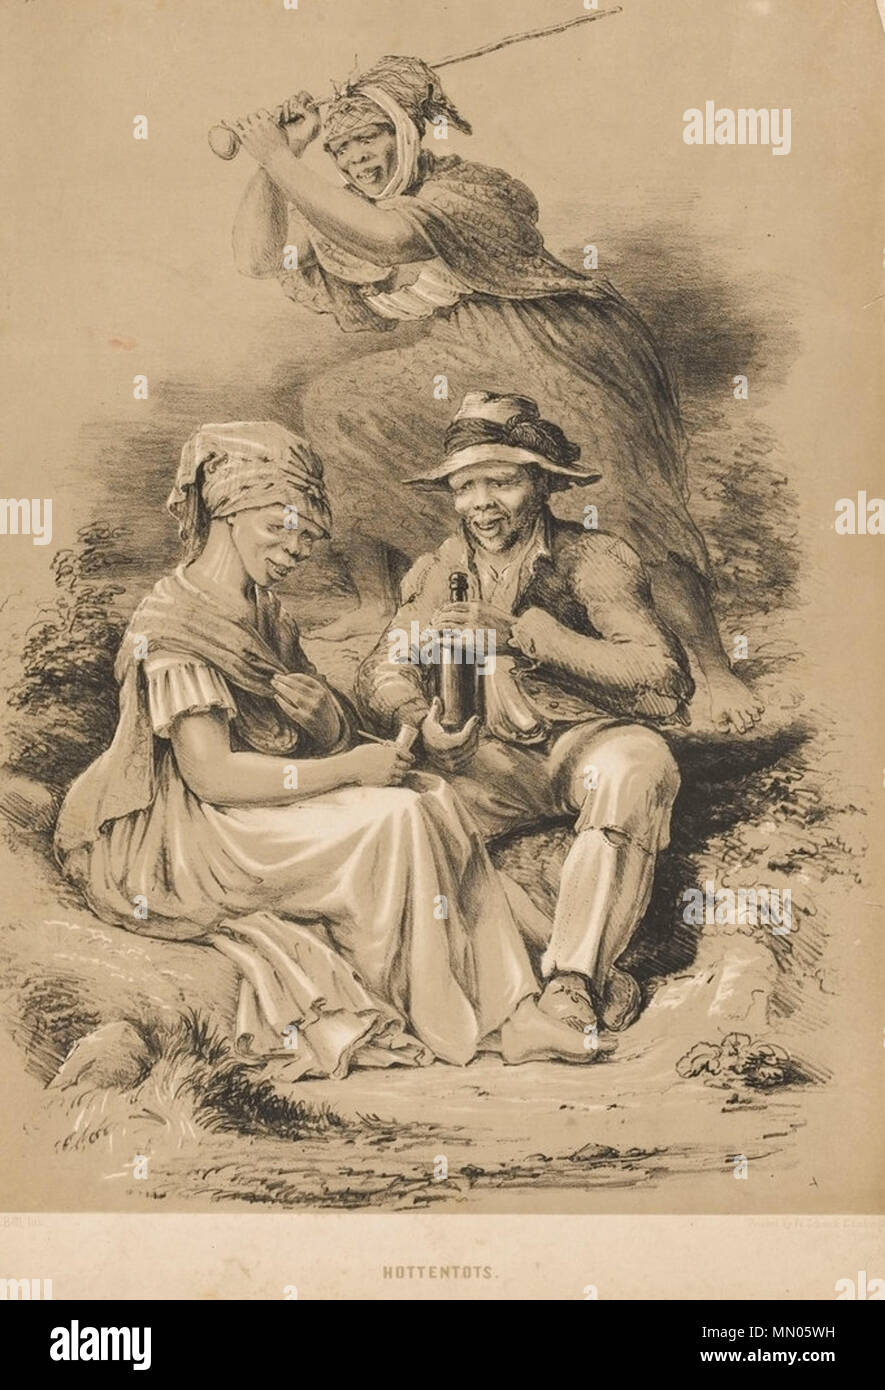 . English: Image depicting a group of 'Hottentots' or Khoikhoi by Charles Davidson Bell. It illustrated Bell's fears regarding the potential dangers of unguided western imperialism. The man is drinking, the woman has cigarettes, while the woman behind brandishes a blunt instrument. All are dressed in Western clothes. Charles Davidson Bell sketched a number of ethnographic studies of the different non-European South Africans he found while living there, some not long after he arrived in 1830, others while on an expedition into the Interior with Dr Andrew Smith in 1834 and more still on his retu - Stock Image